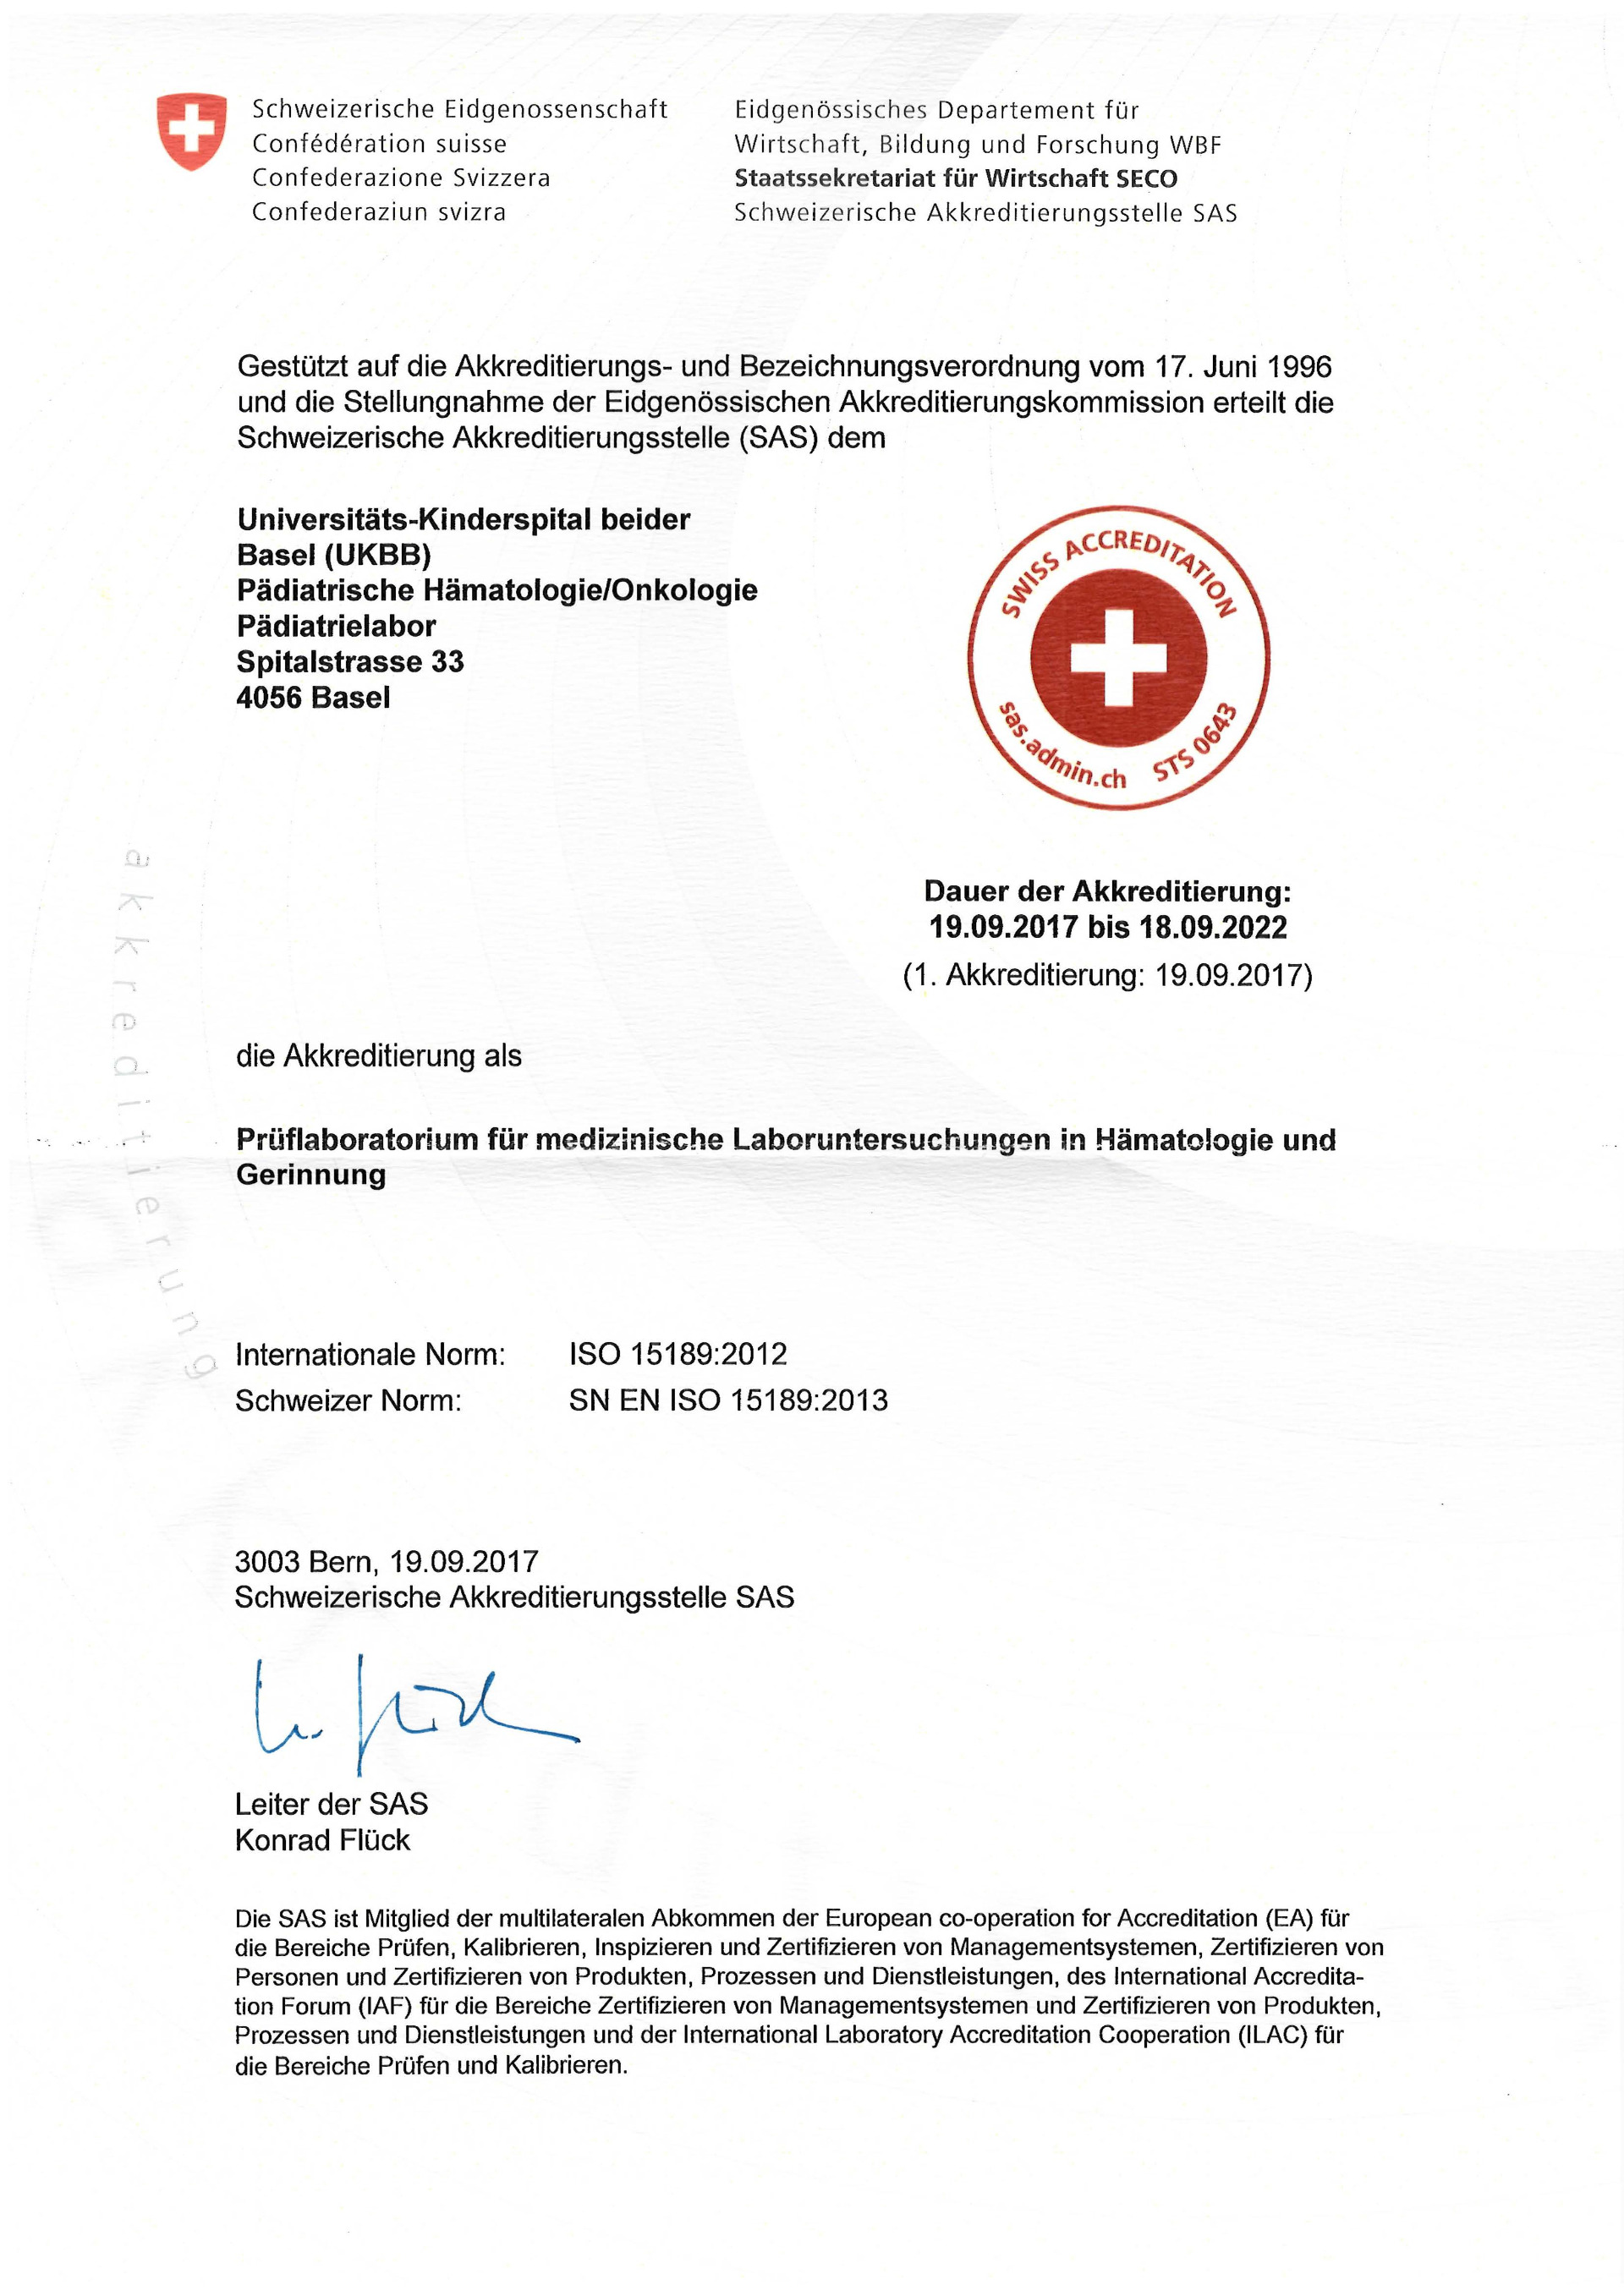 Akkreditierung Pädiatrielabor